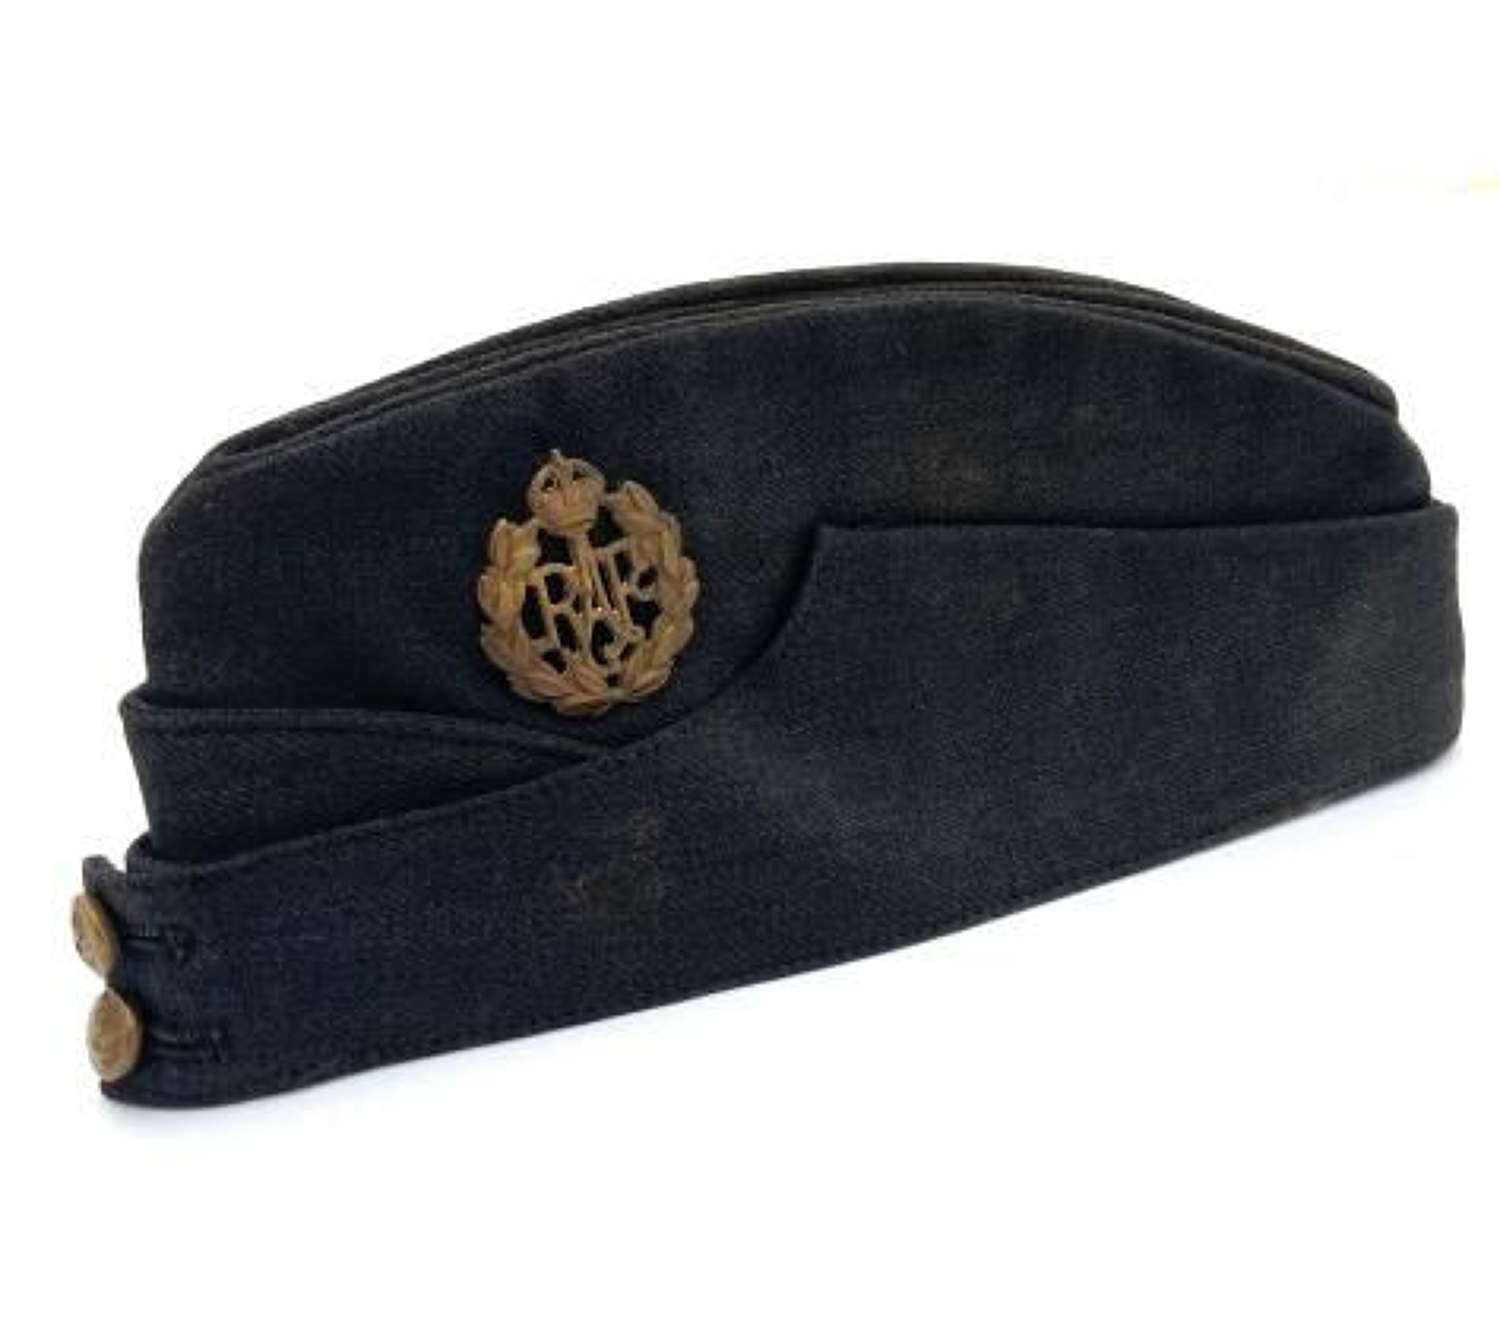 Original Early WW2 RAF Ordinary Airman's Side Cap